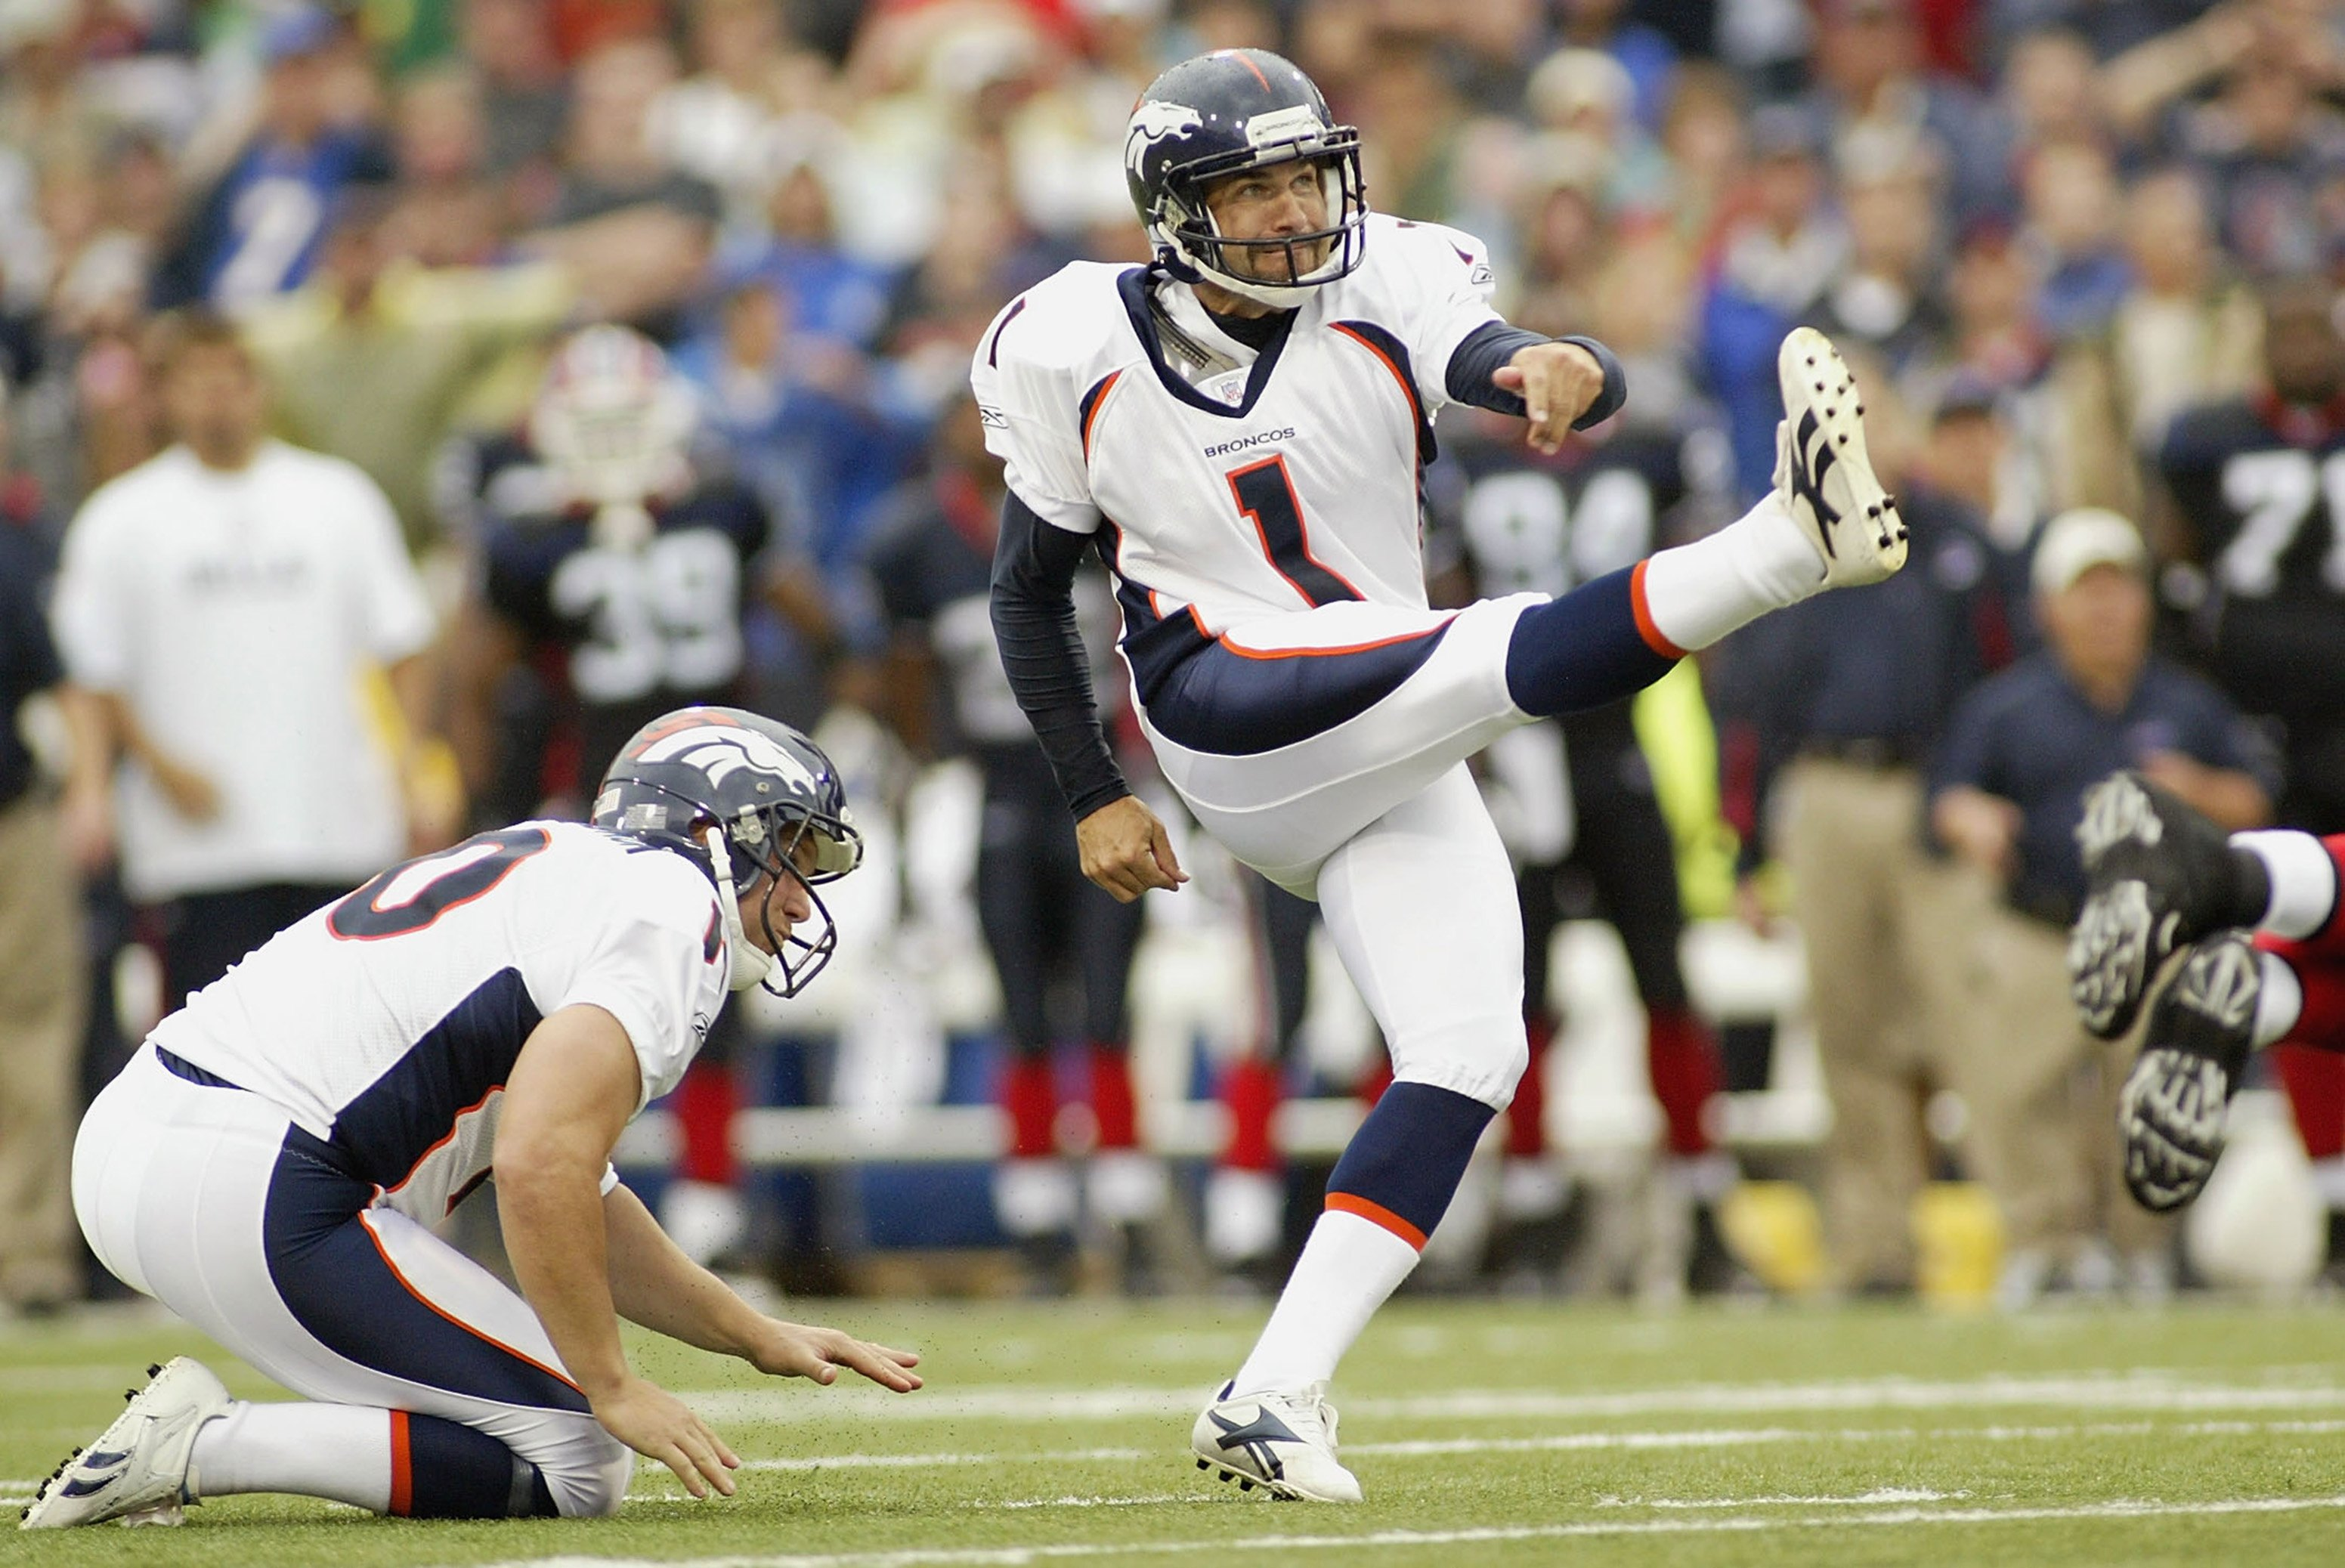 ORCHARD PARK, NY - SEPTEMBER 9: Jason Elam #1 of the Denver Broncos kicks a field goal during the game against the Buffalo Bills on September 9, 2007 at Ralph Wilson Stadium in Orchard Park, New York. The Broncos won 15-14. (Photo by Rick Stewart/Getty Images)